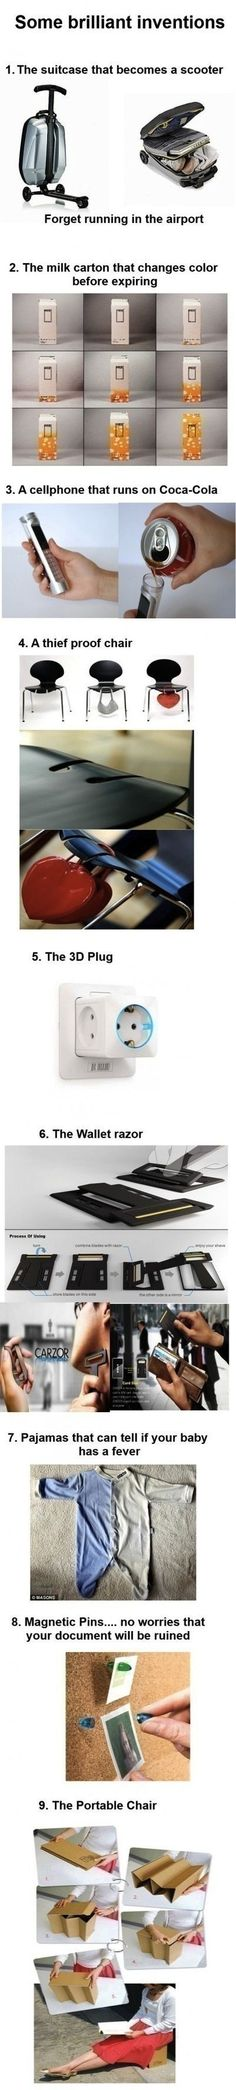 Some brilliant inventions.